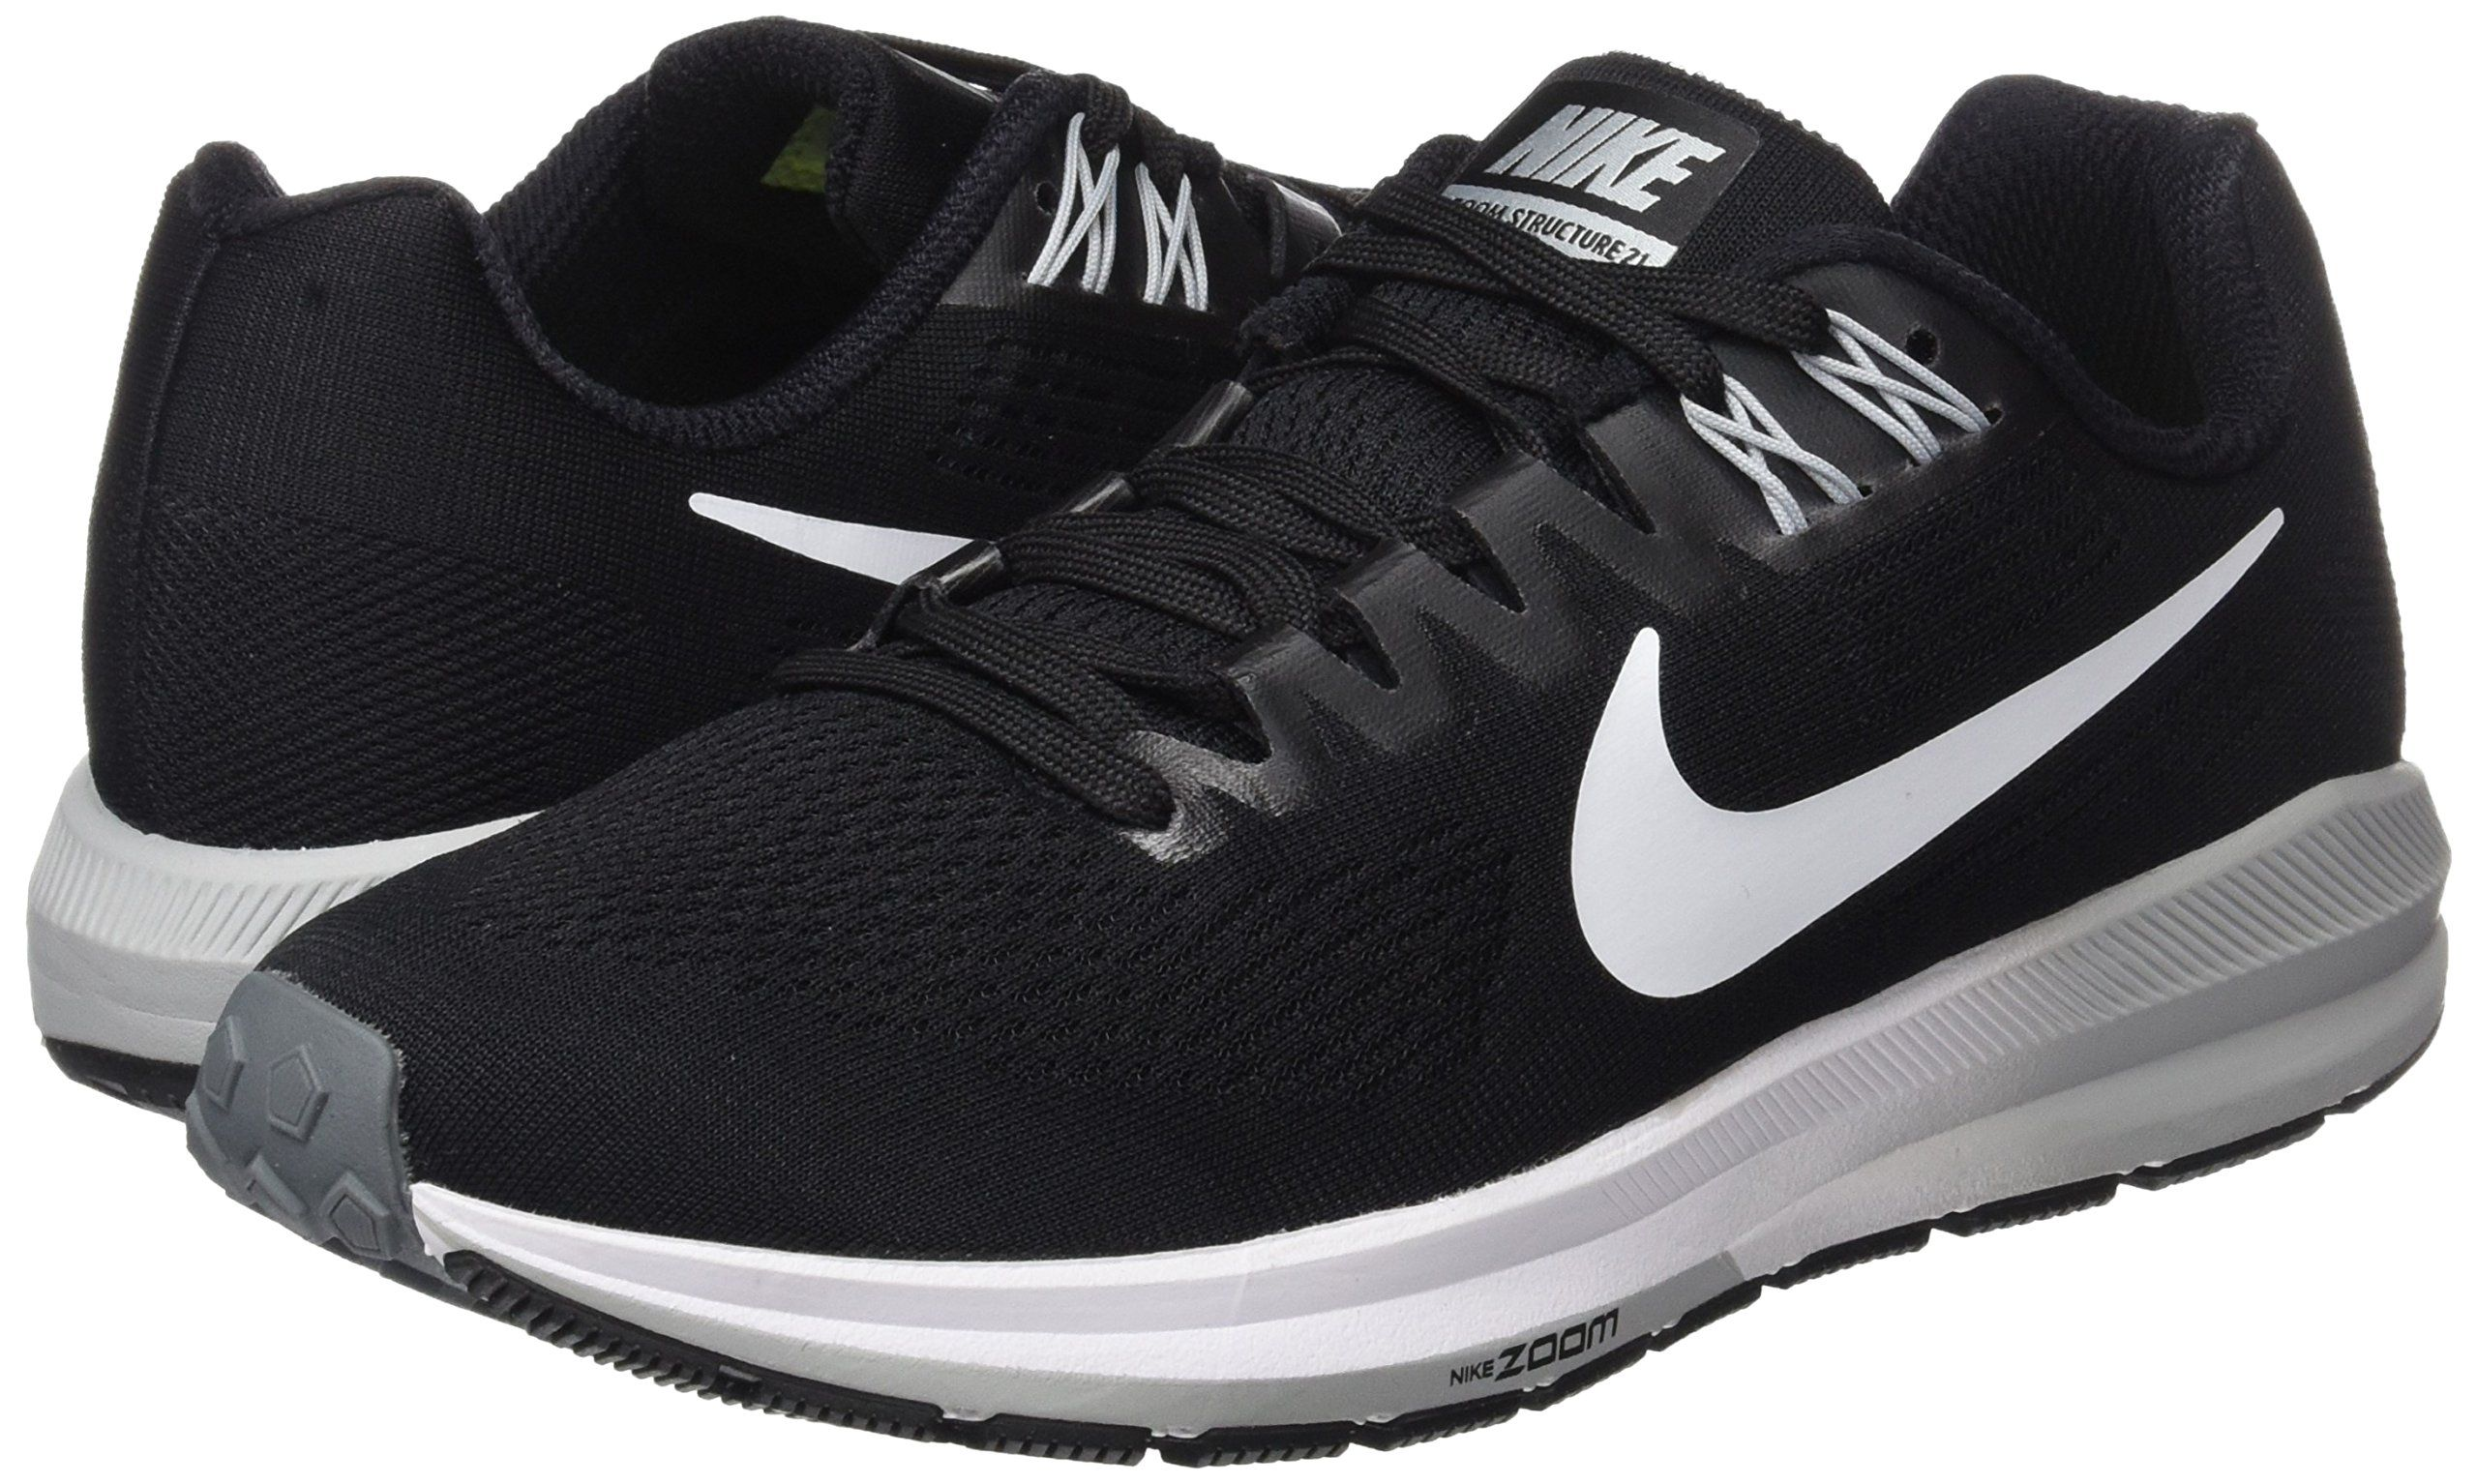 Nike Womens Air Zoom Structure 21 Black White Wolf Grey Running Shoe 6 Women Us You Can Get Additional Details At The I Nike Women Nike Black Running Shoes